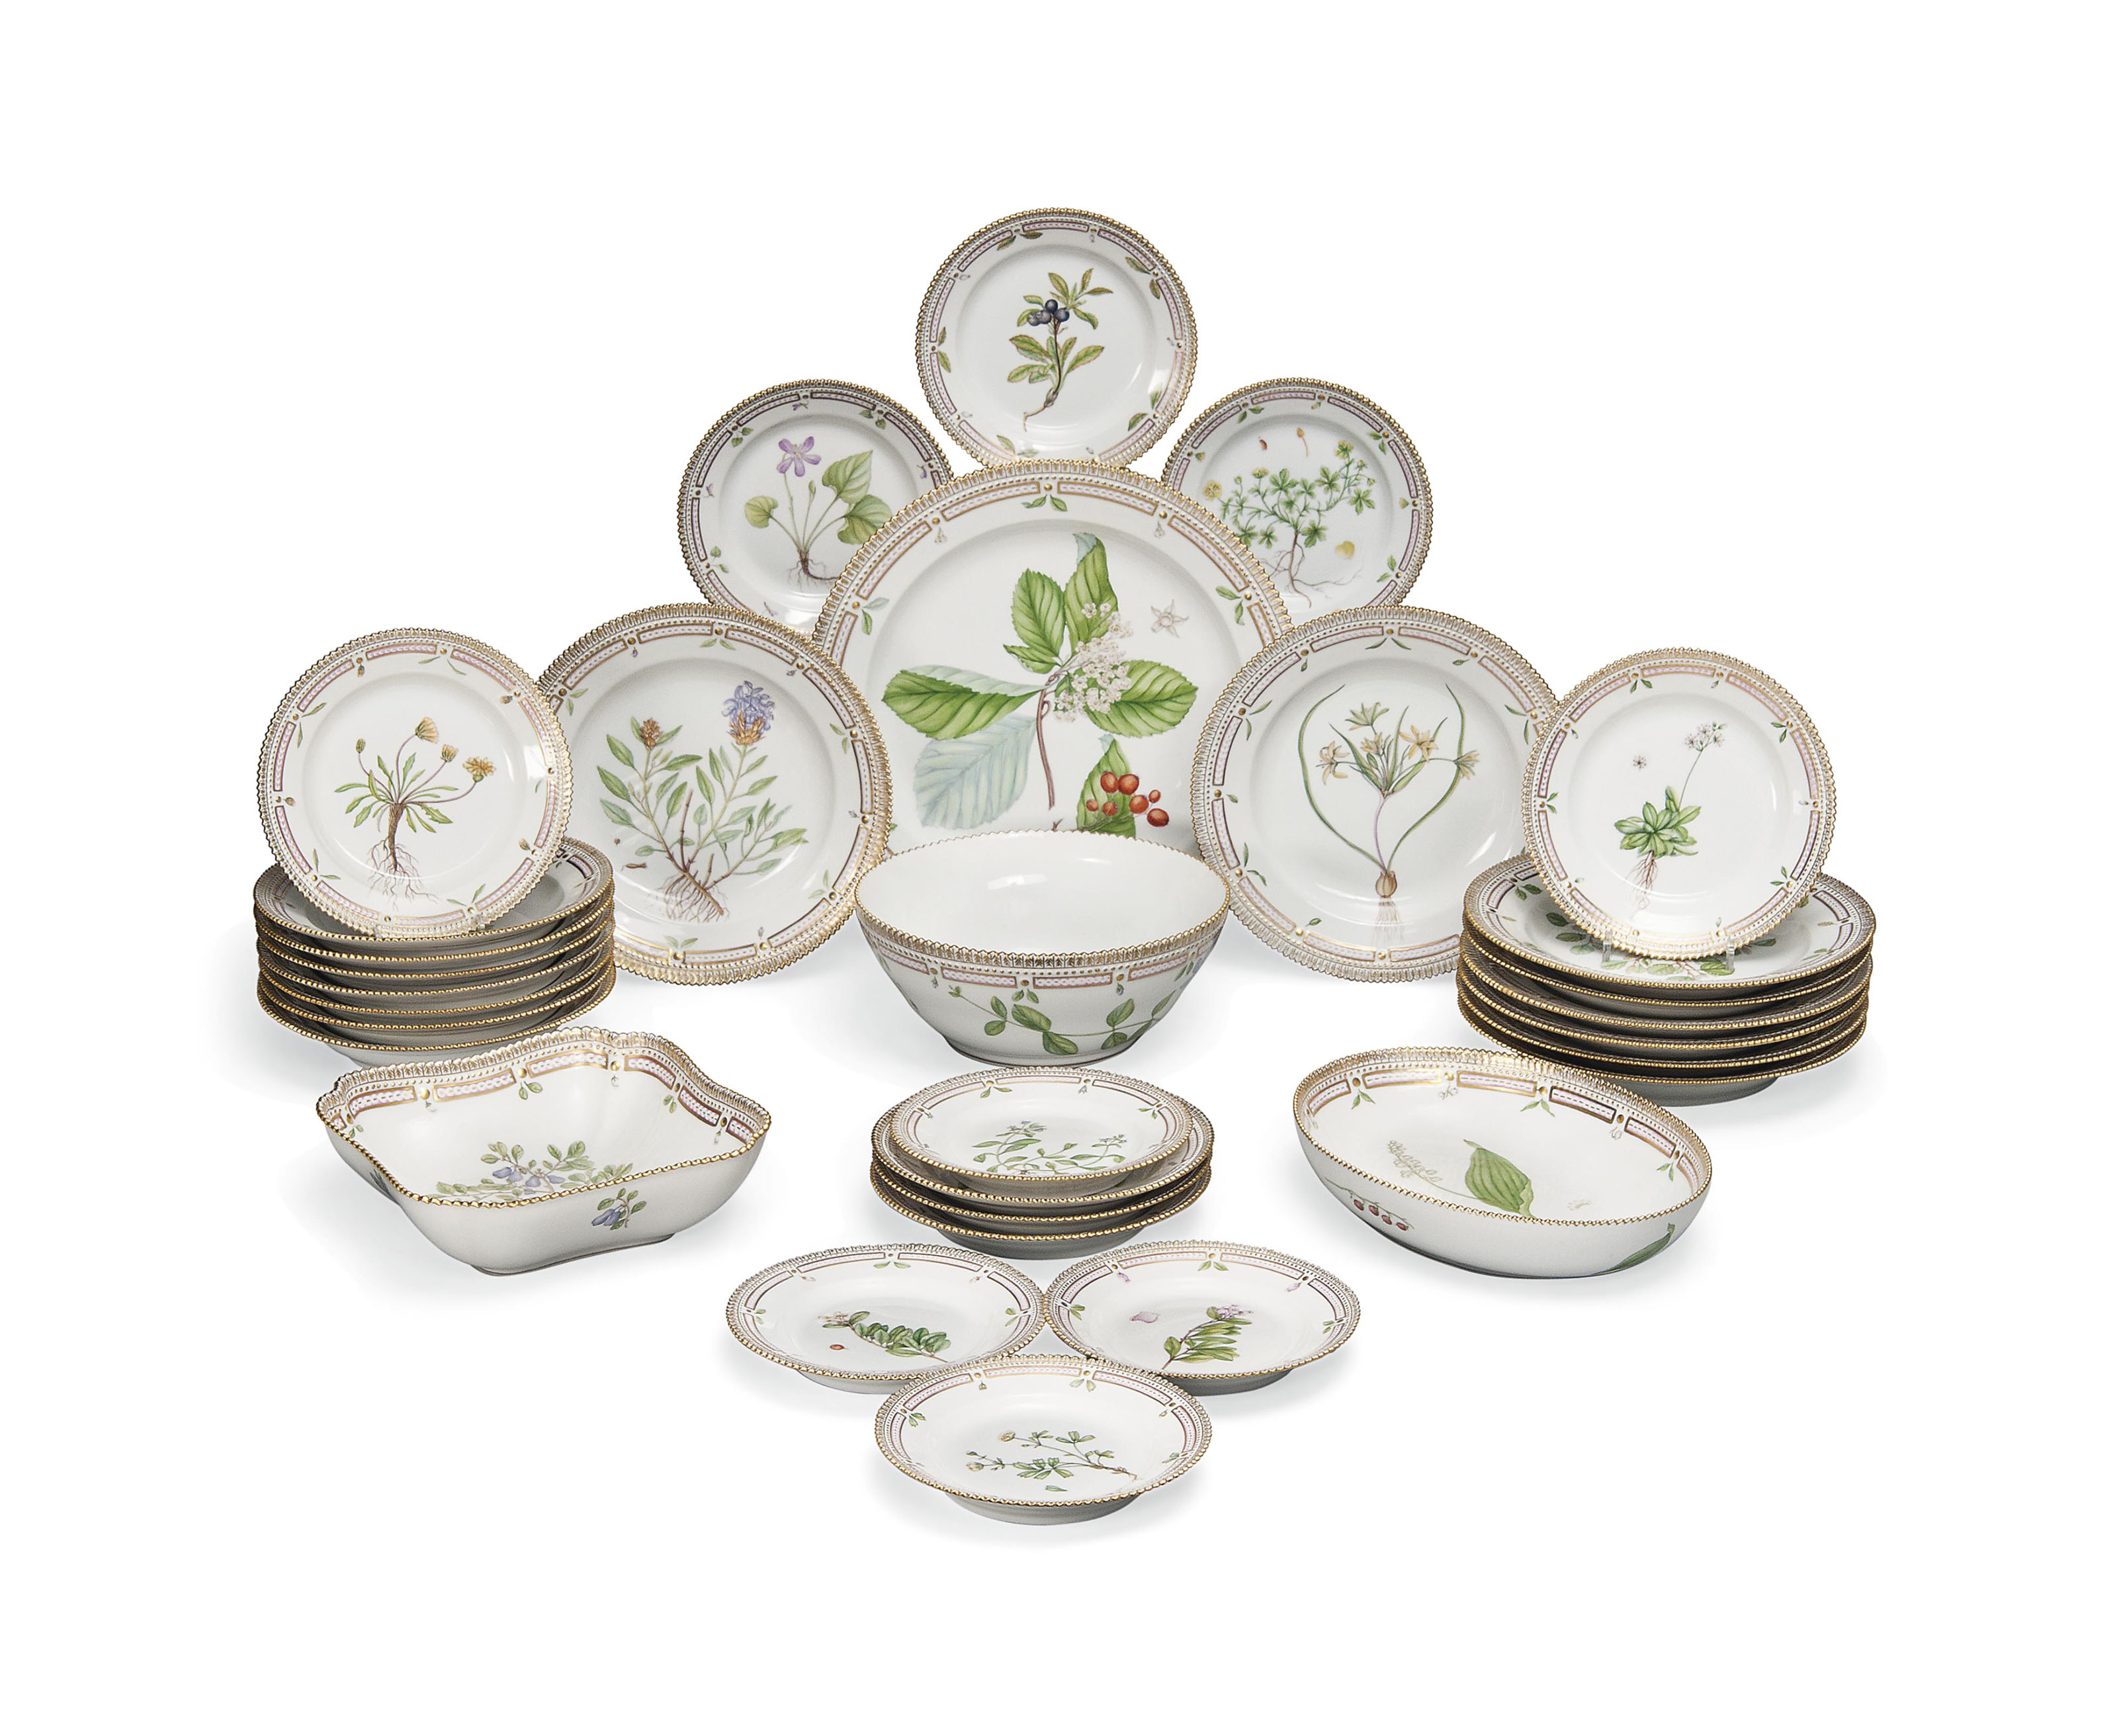 A ROYAL COPENHAGEN 'FLORA DANICA' PART TABLE-SERVICE